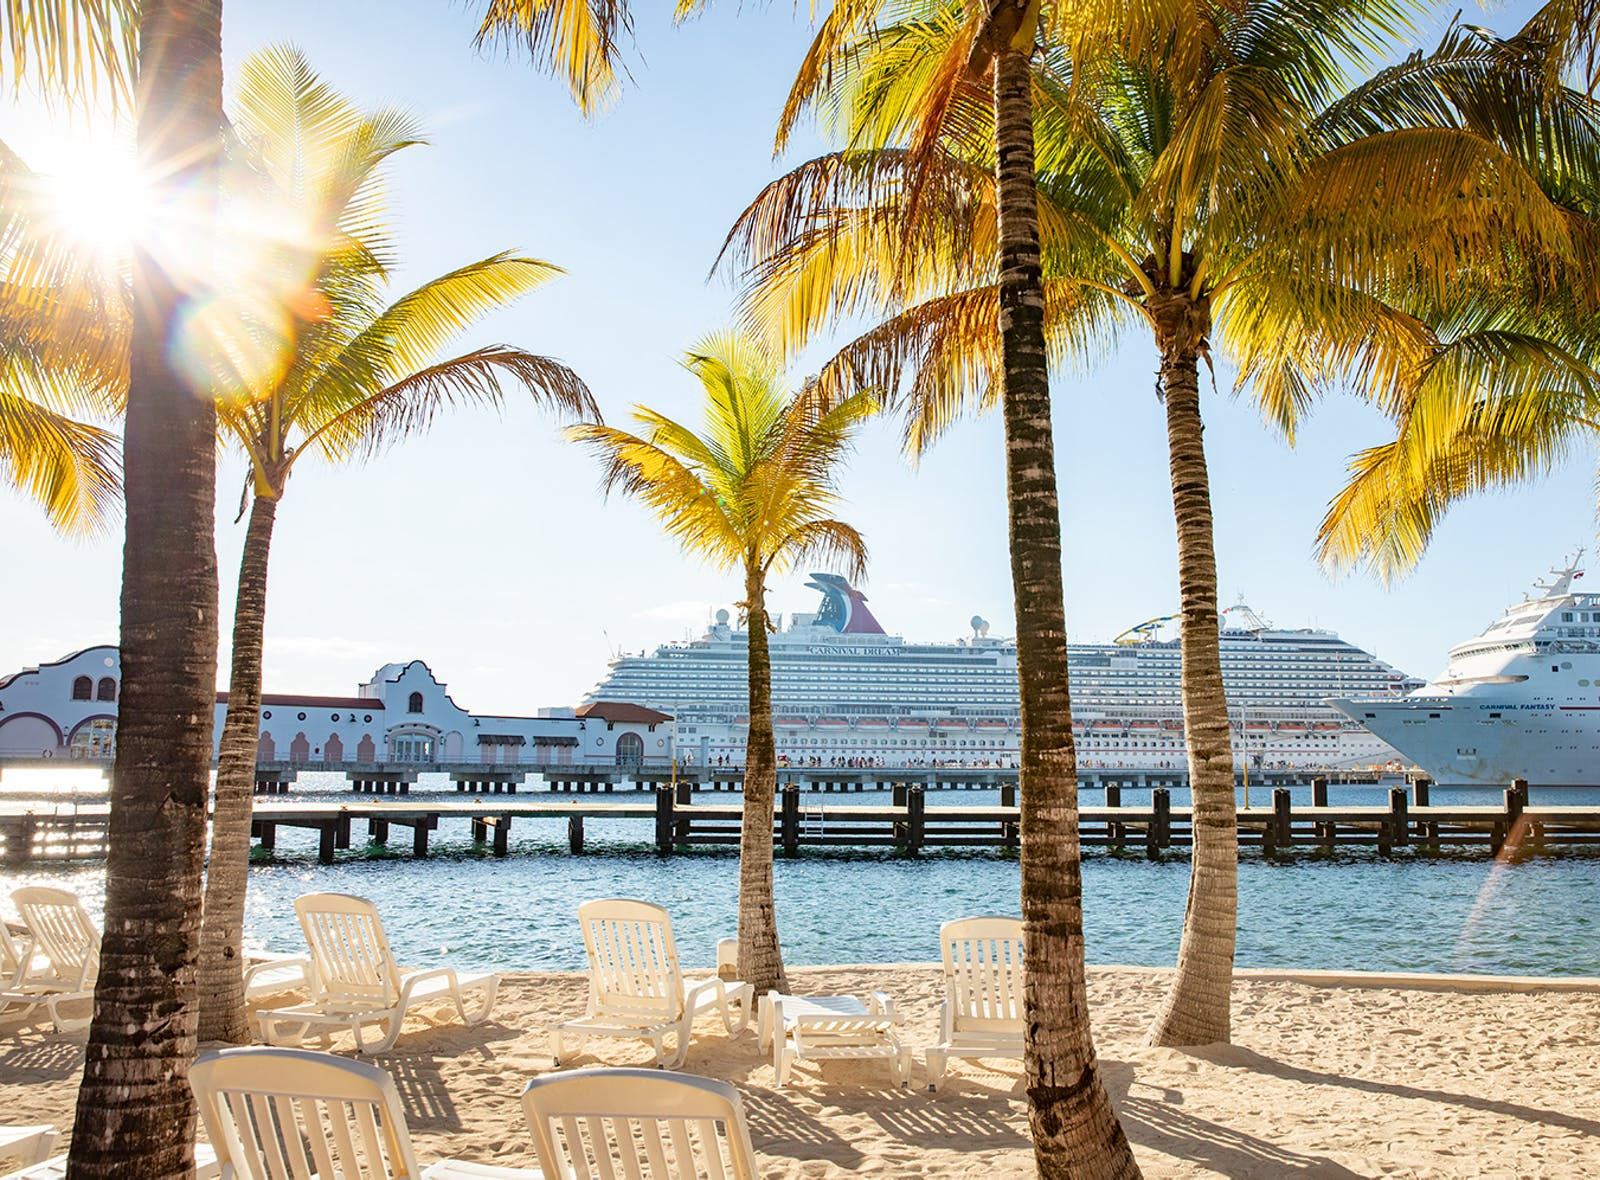 carnival cruise Cozumel palm trees and cruise ships